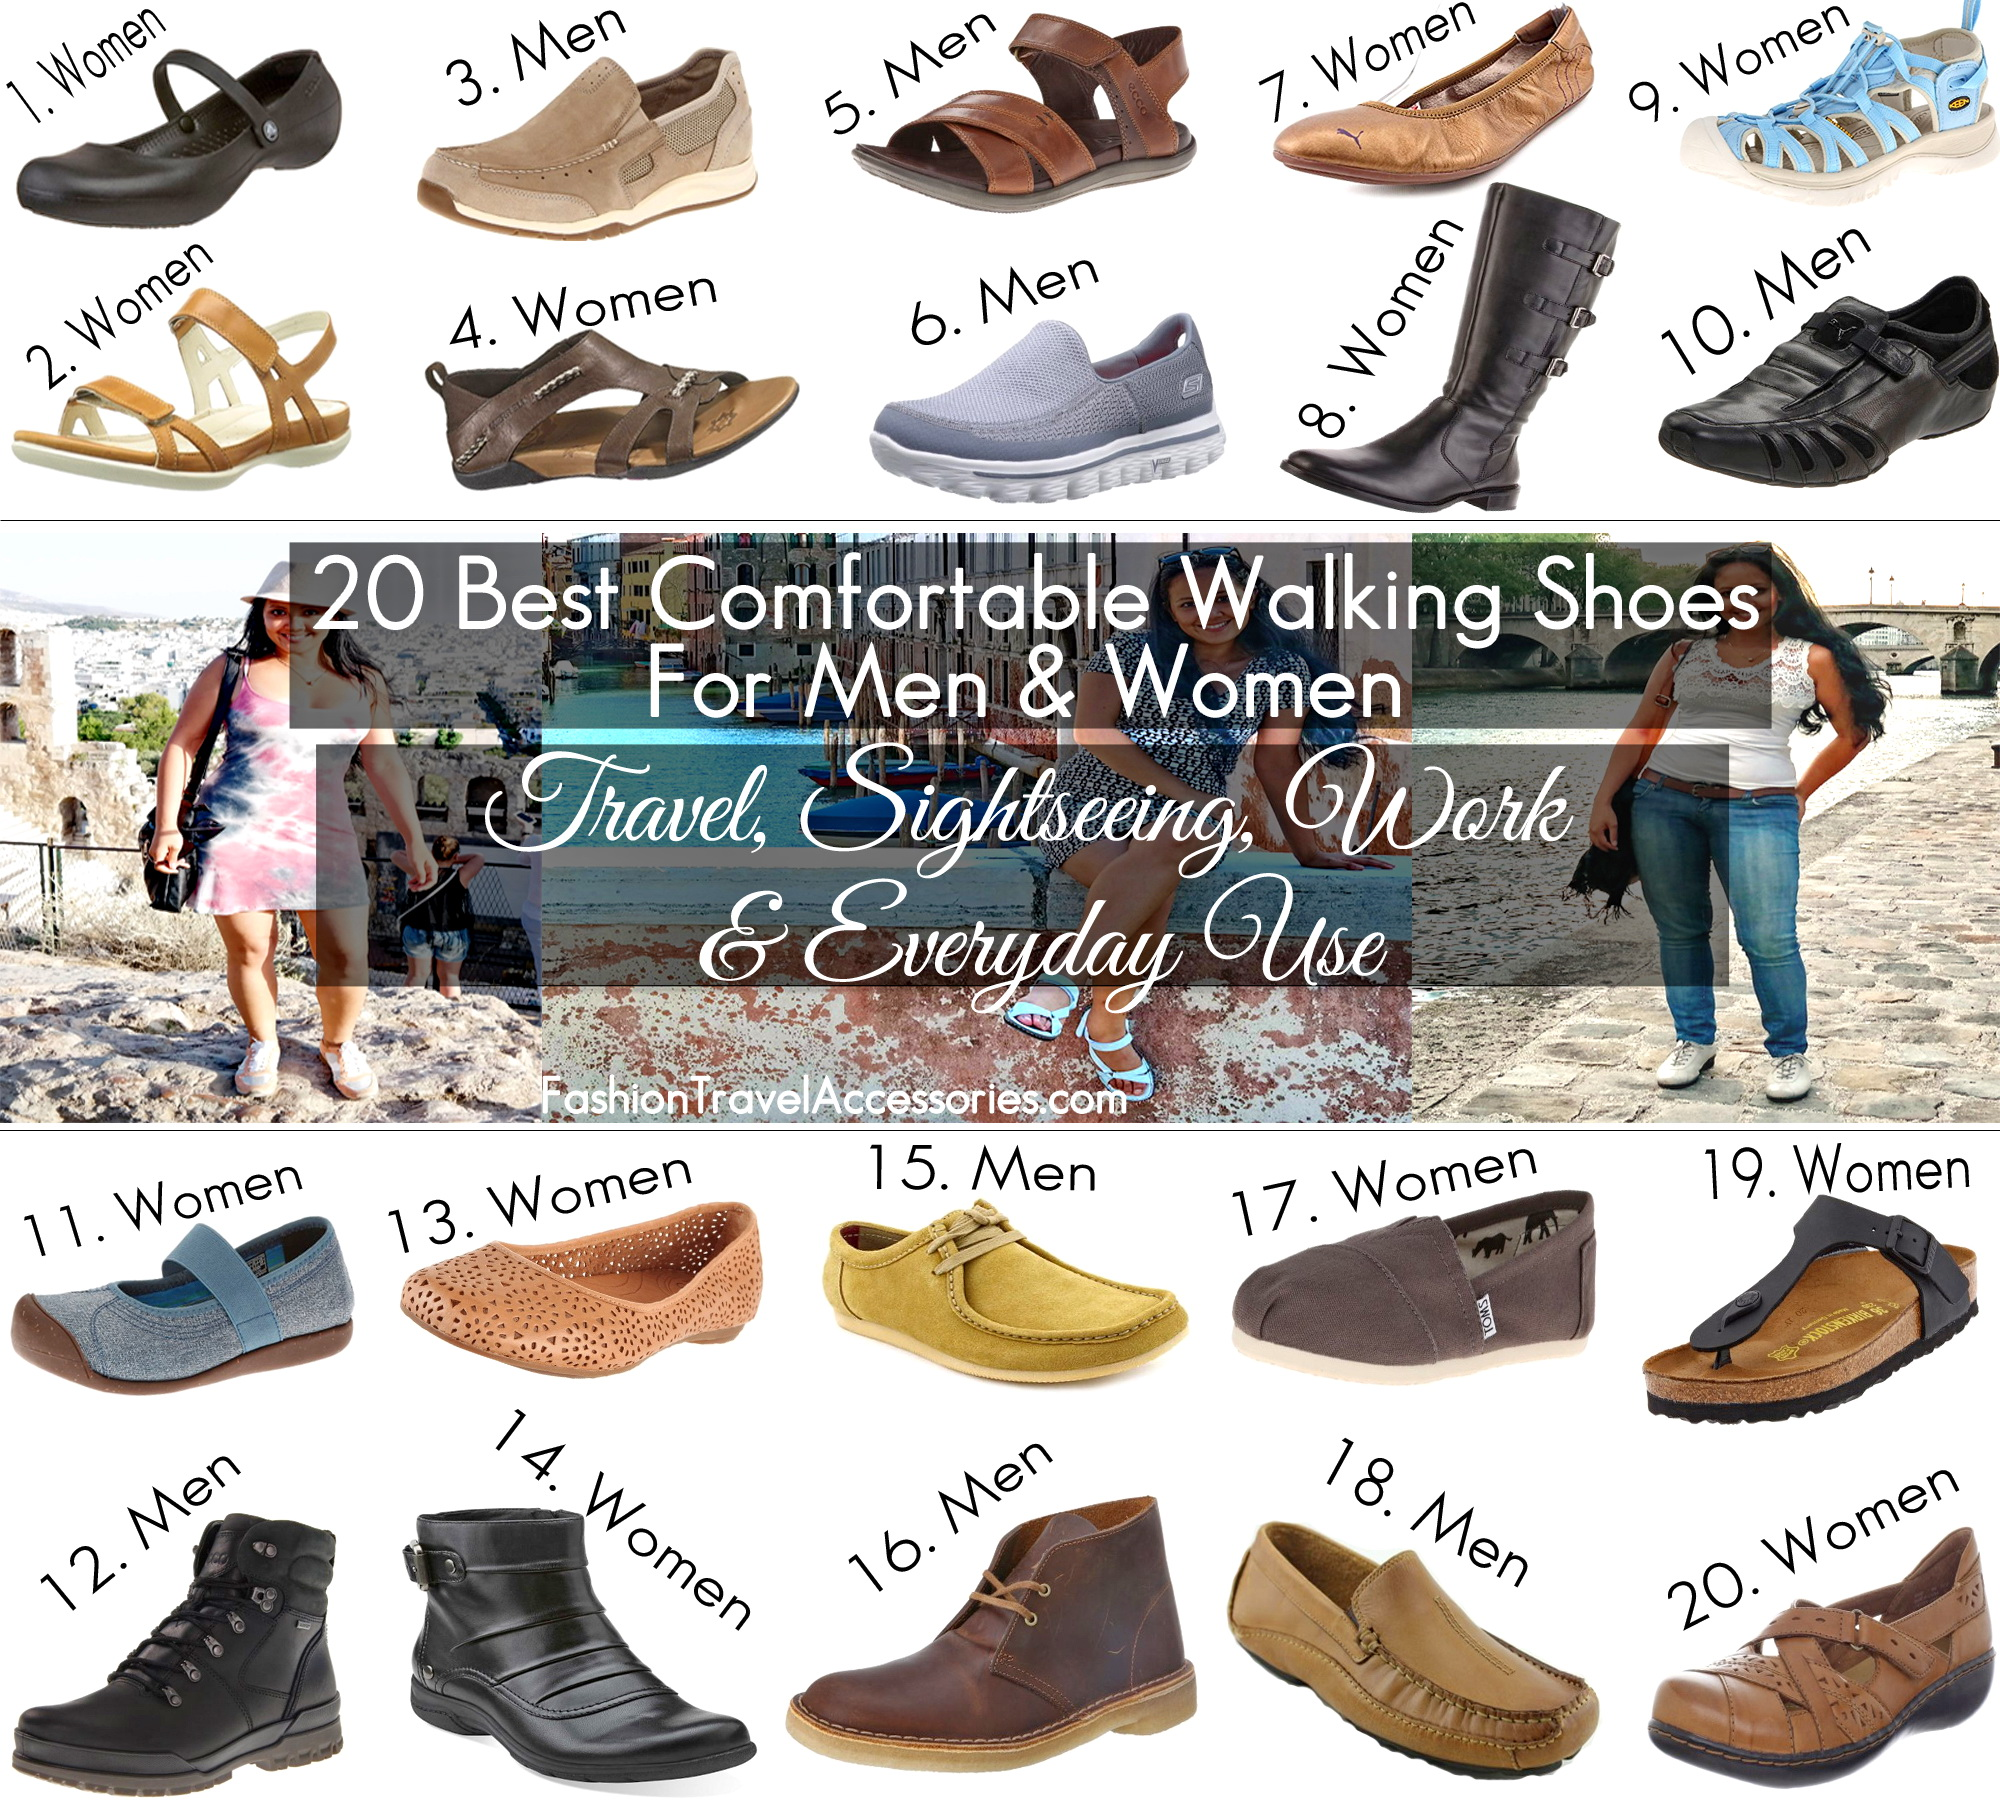 9f0cecaf309 Best-Comfortable-Walking-Shoes-For-Men-and-Women-